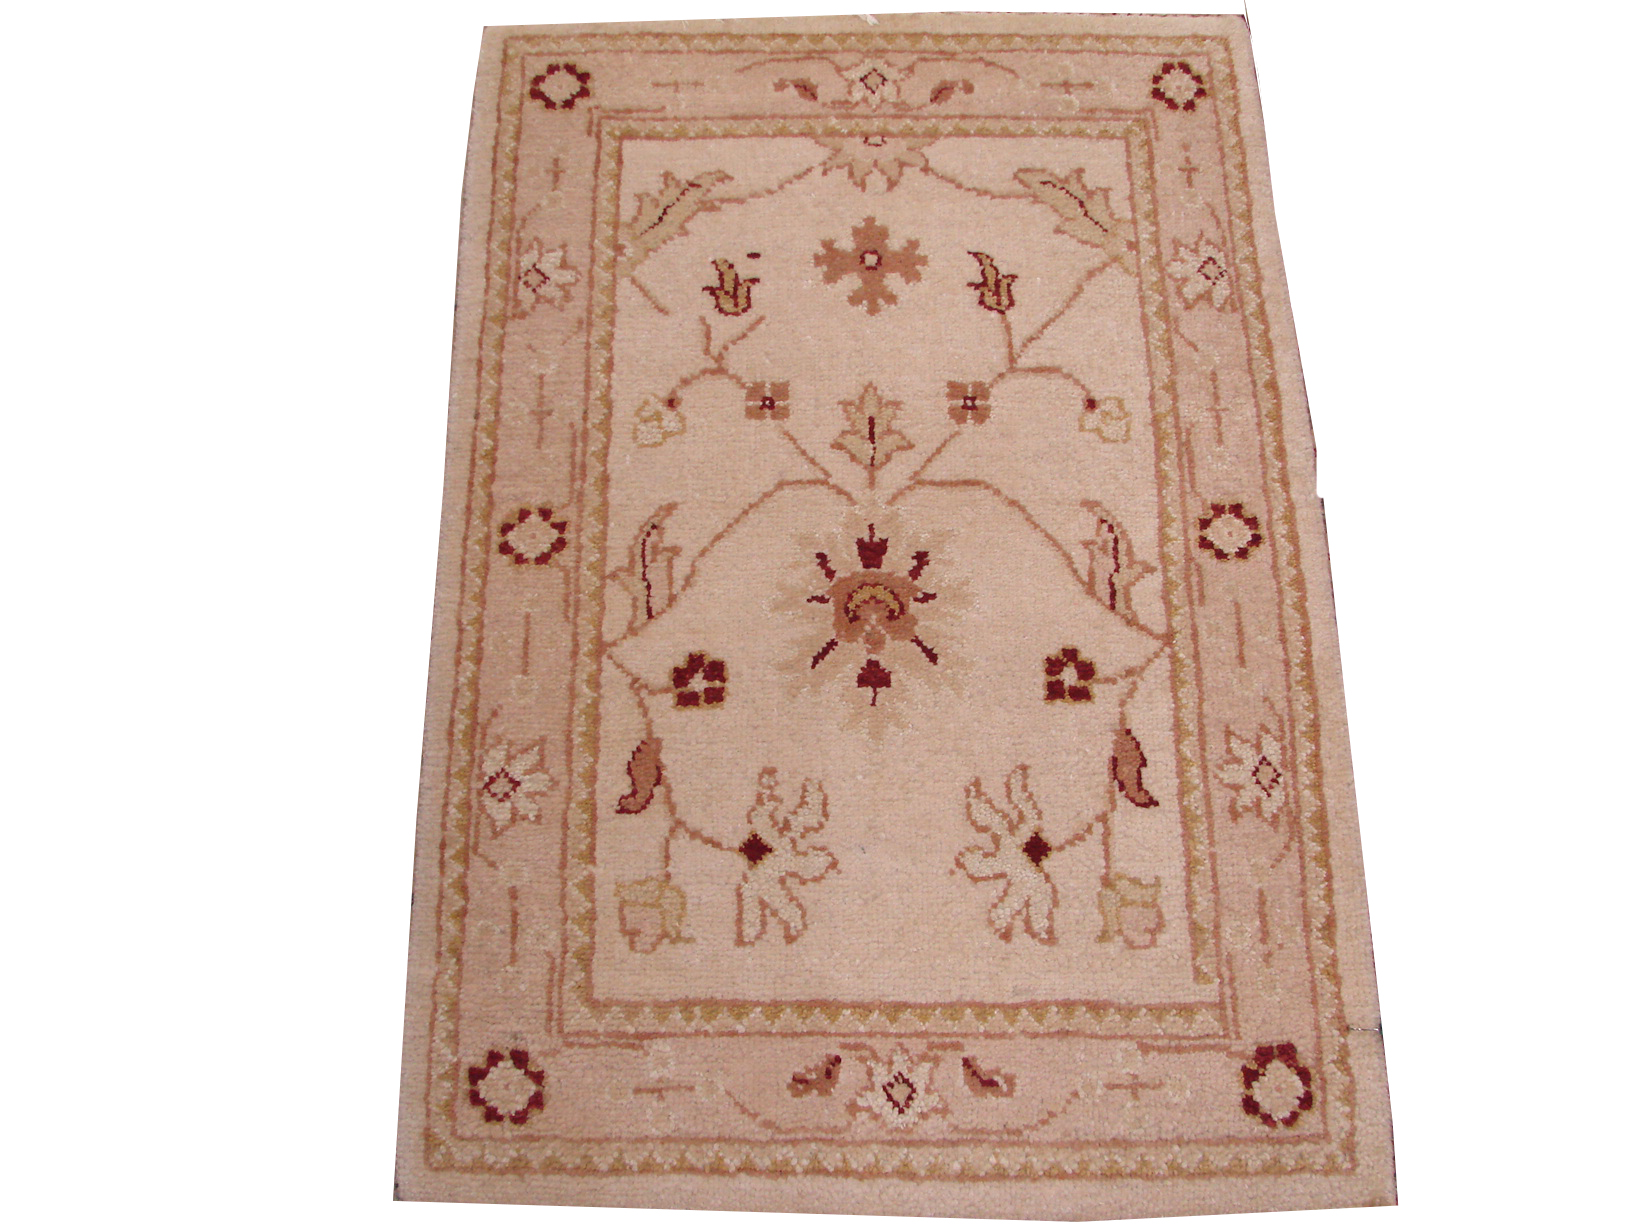 2X3 Oushak Hand Knotted Wool Area Rug - MR6312